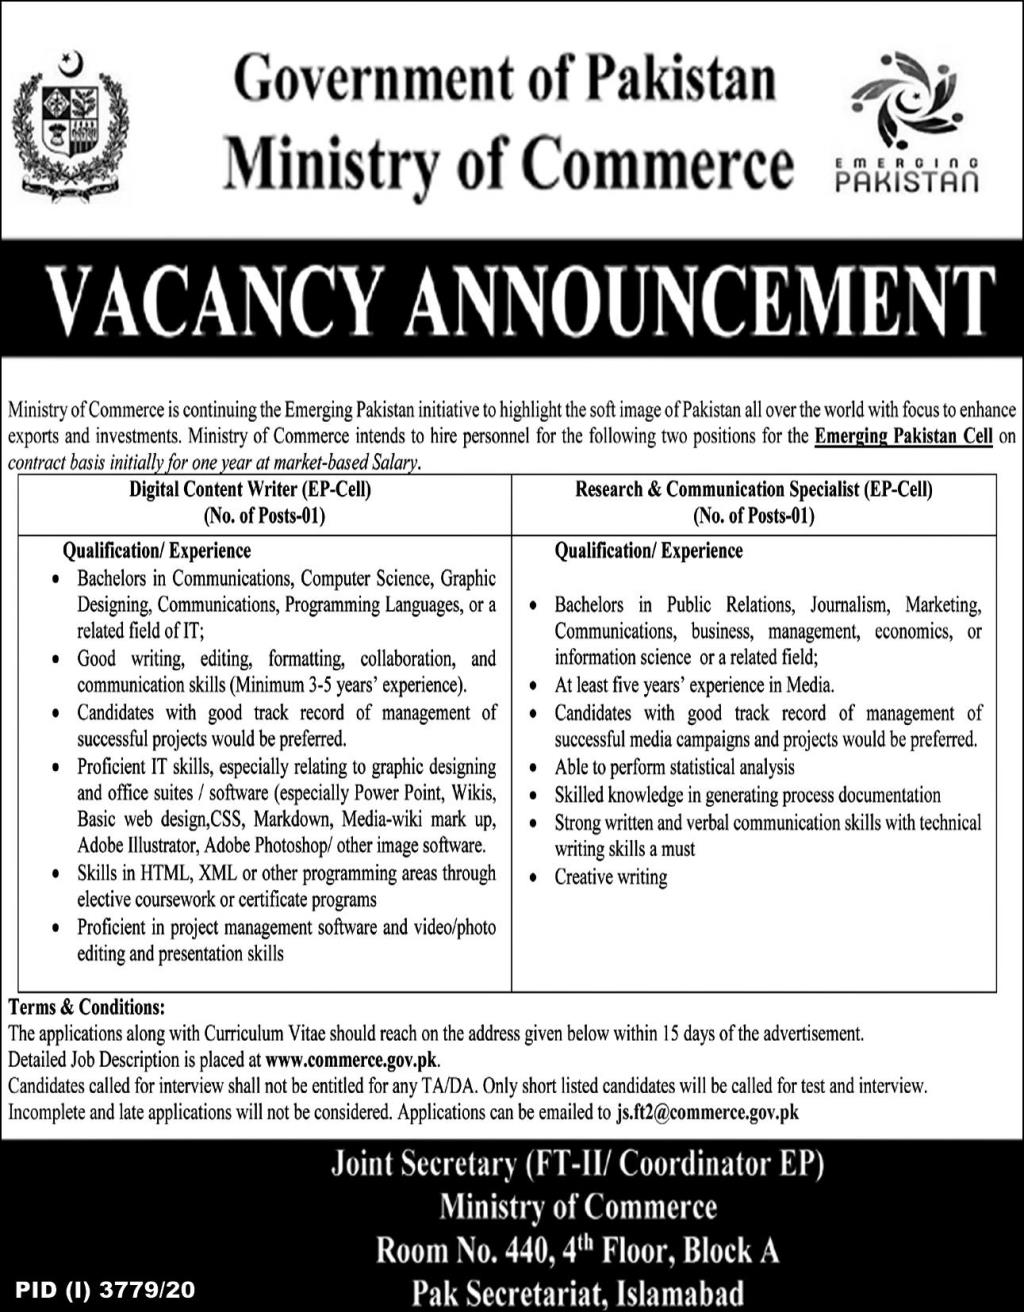 Digital Content Writer Jobs in Ministry of Commerce 21 Jan 2021